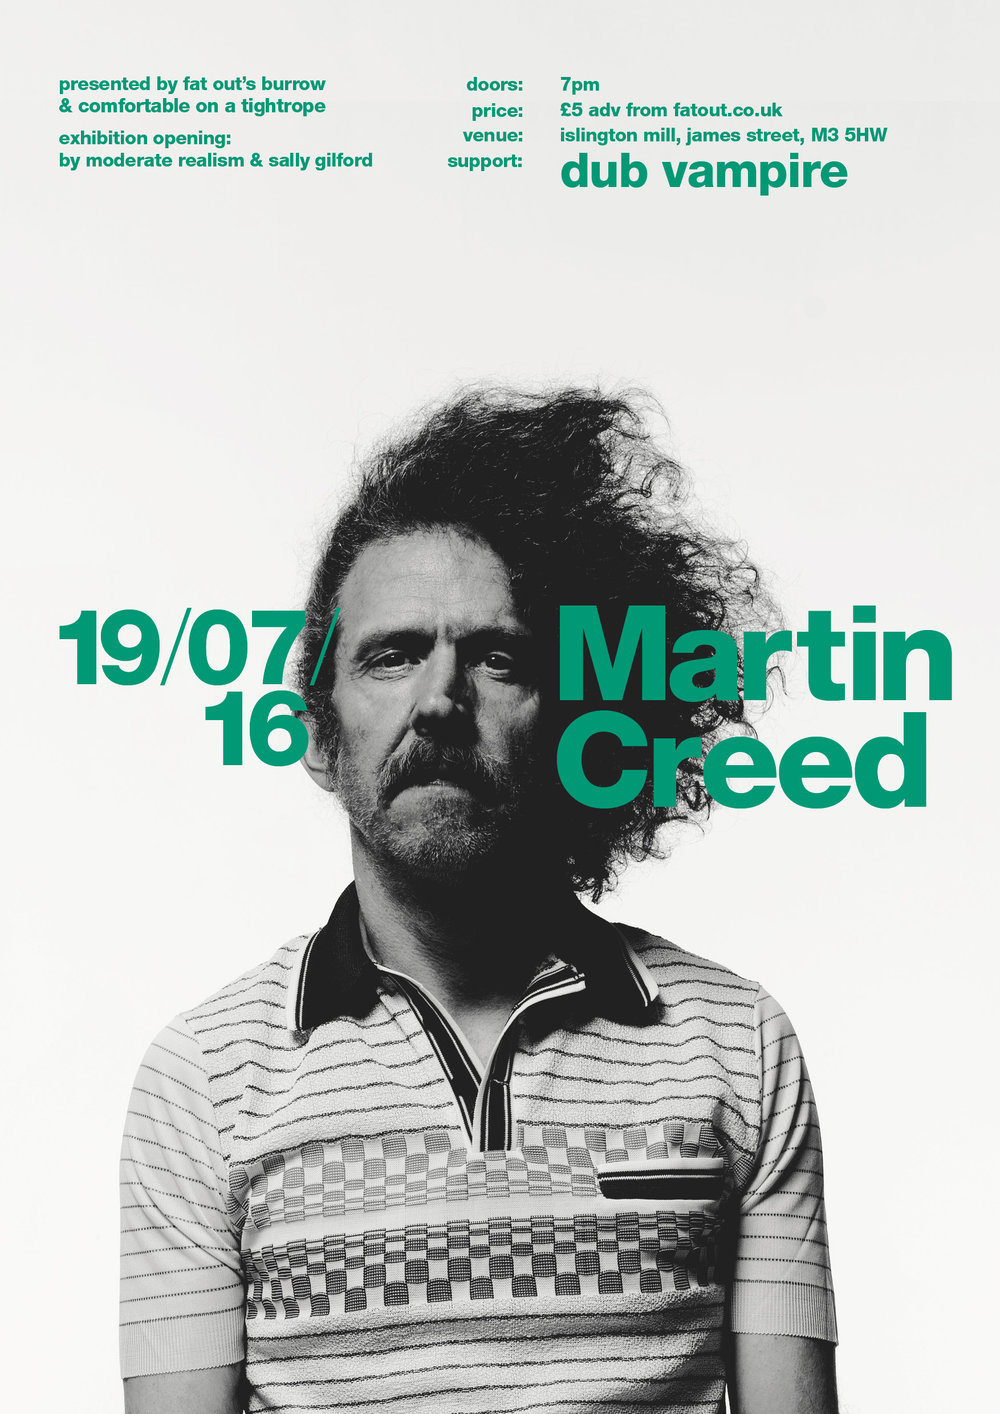 martincreed.jpg